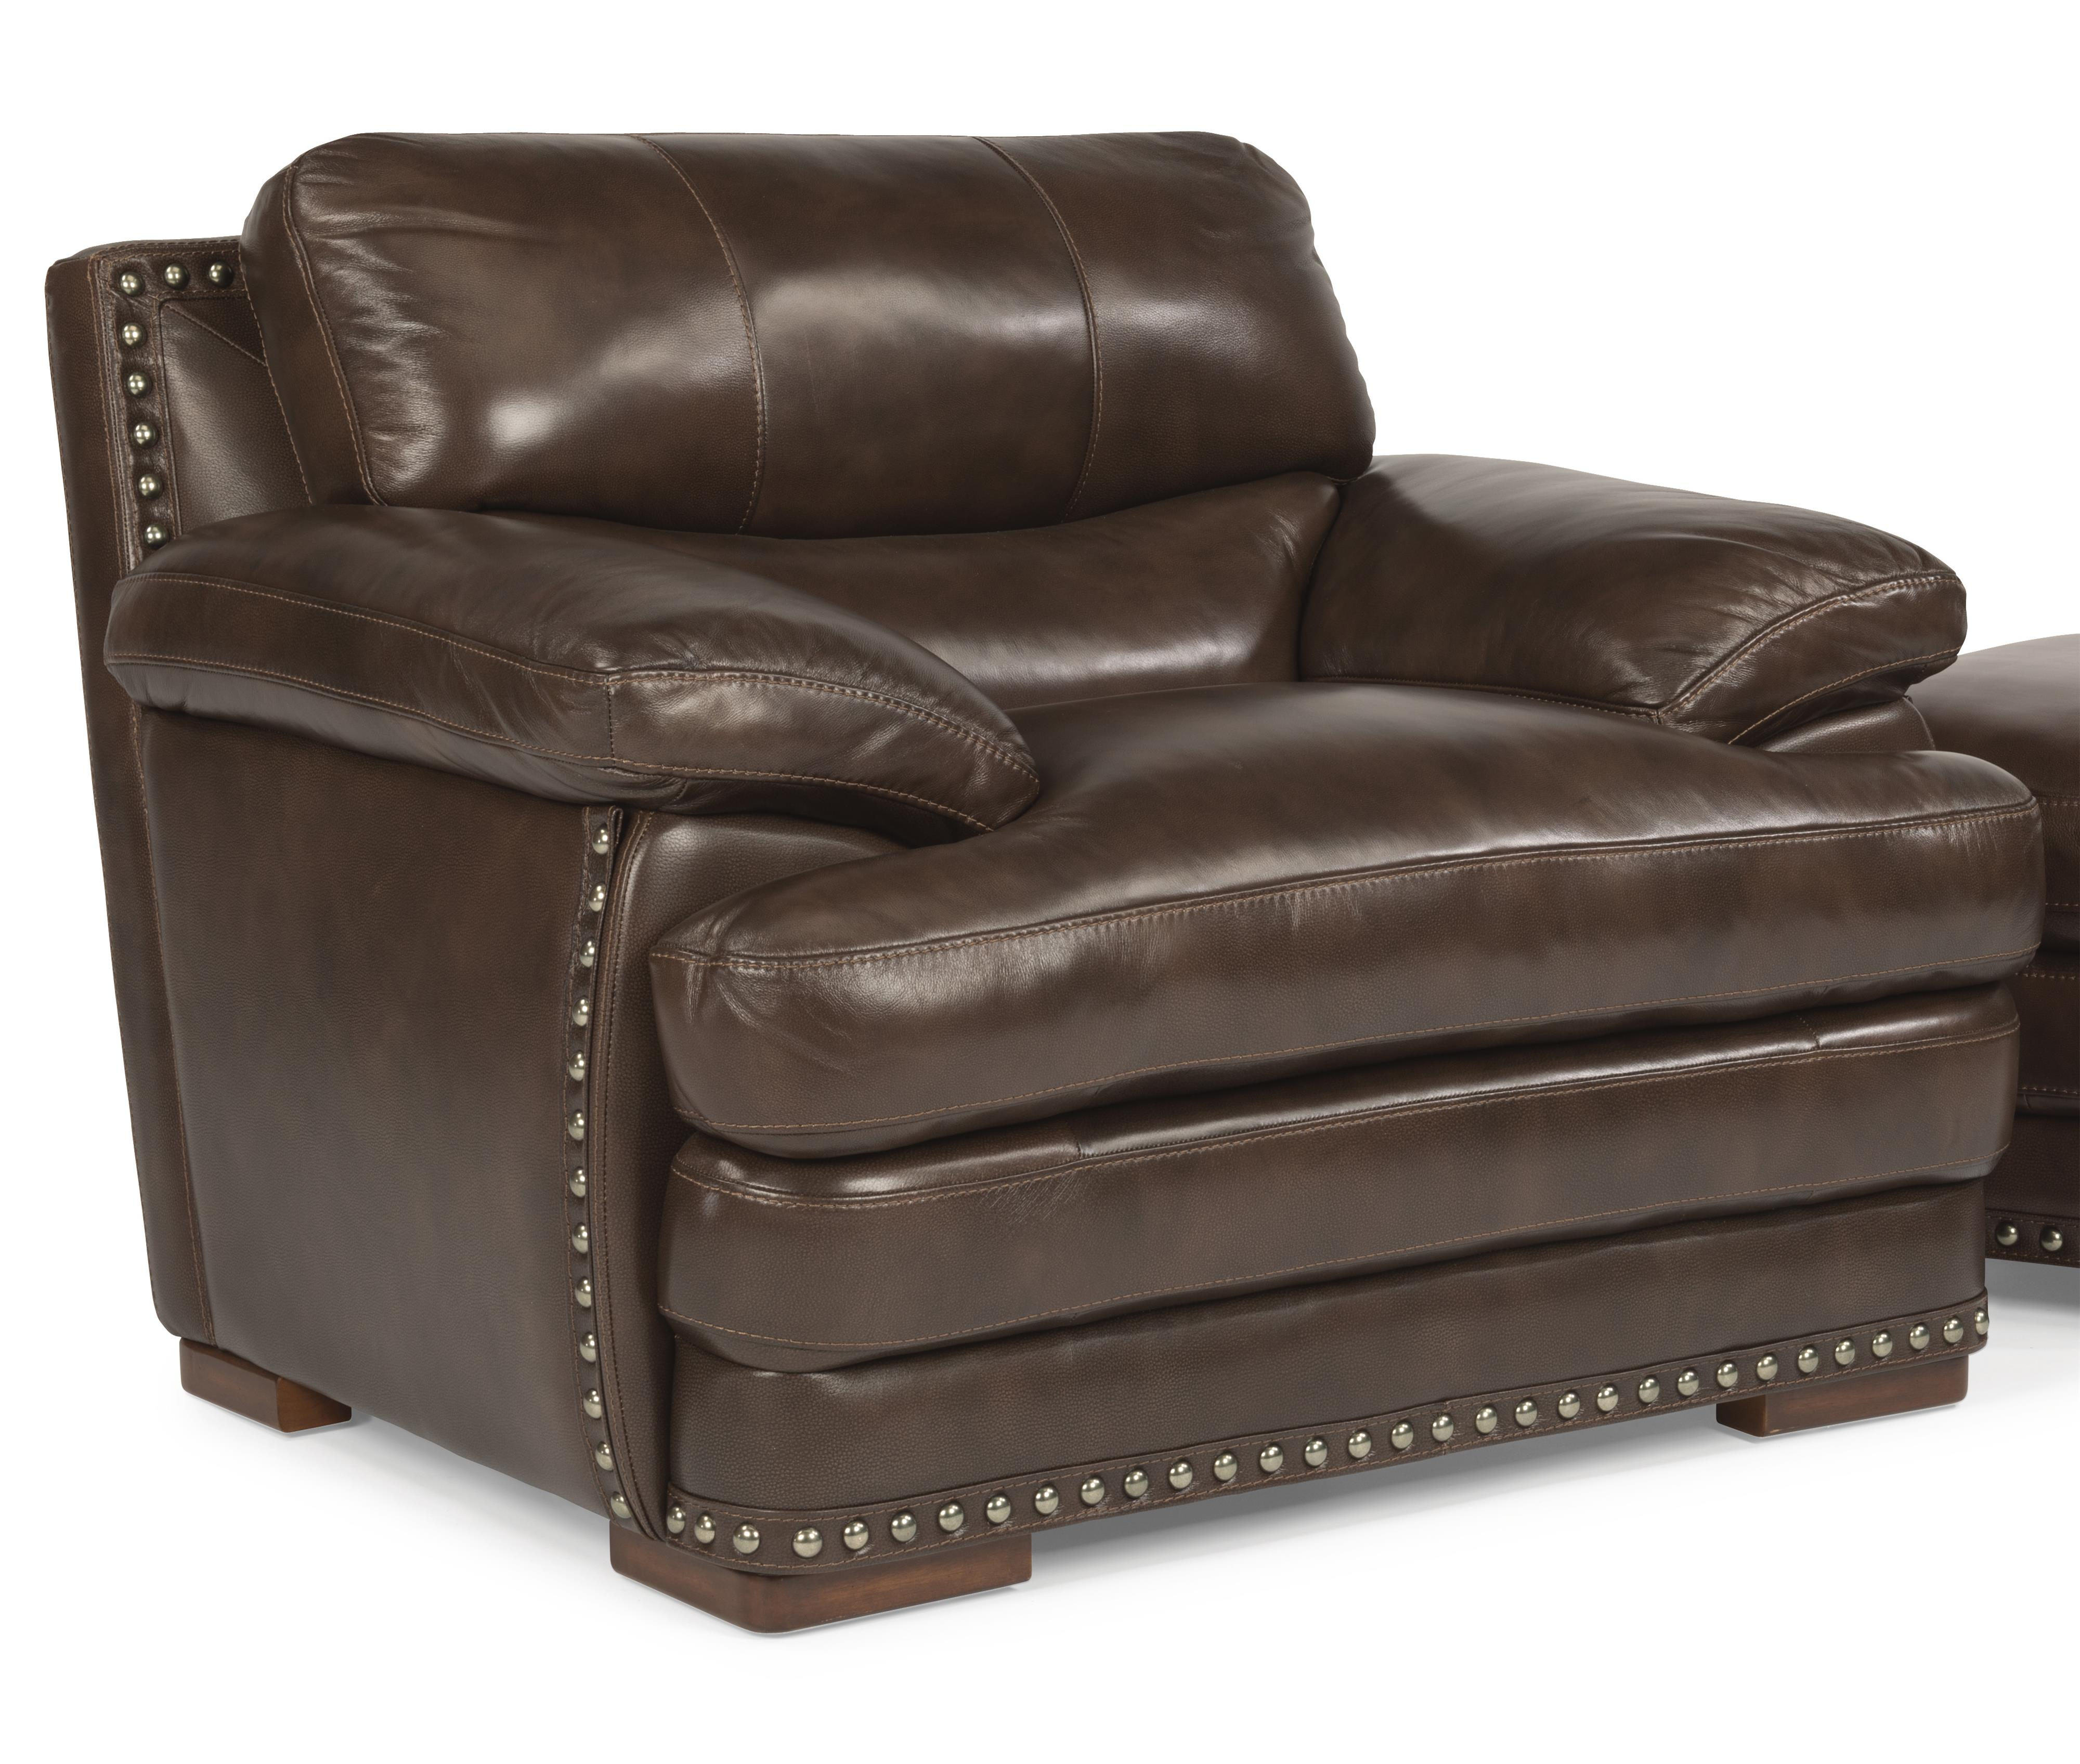 Flexsteel Latitudes - Dylan Leather Chair w/ Nailheads - Item Number: 1627-10-908-70